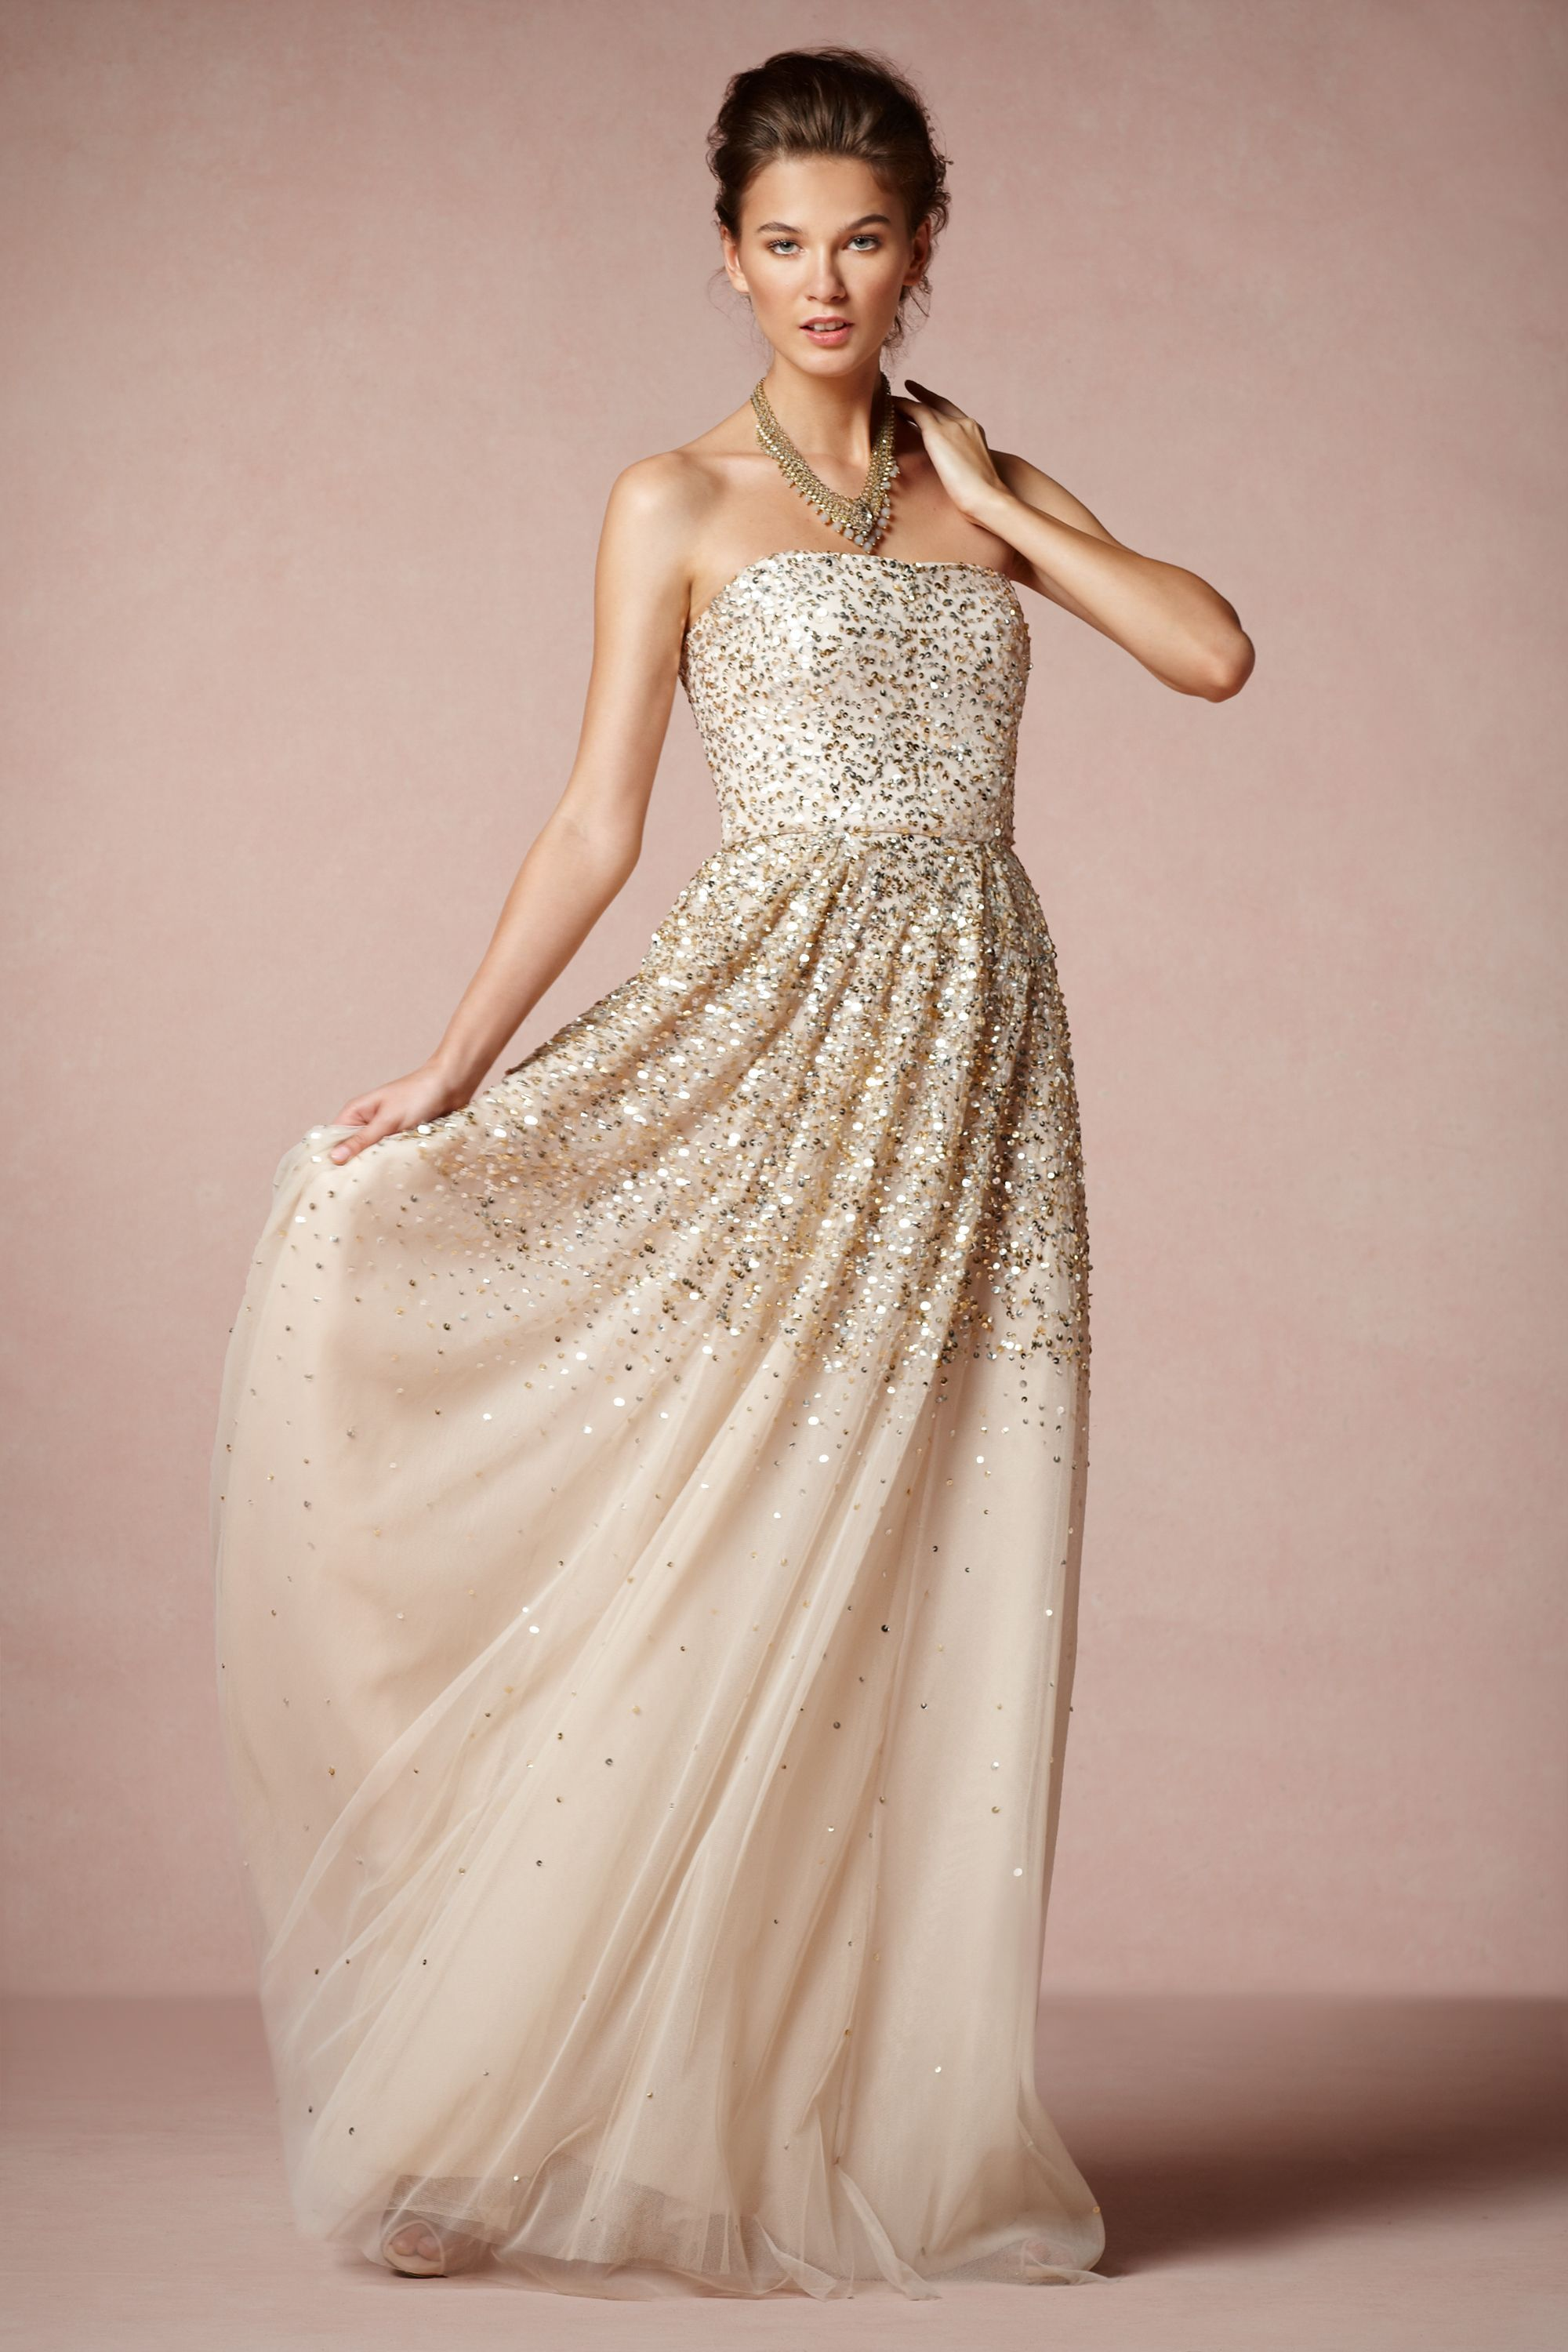 dress for wedding party Gold Inspiration wedding dresses bridal dress dresses gold party